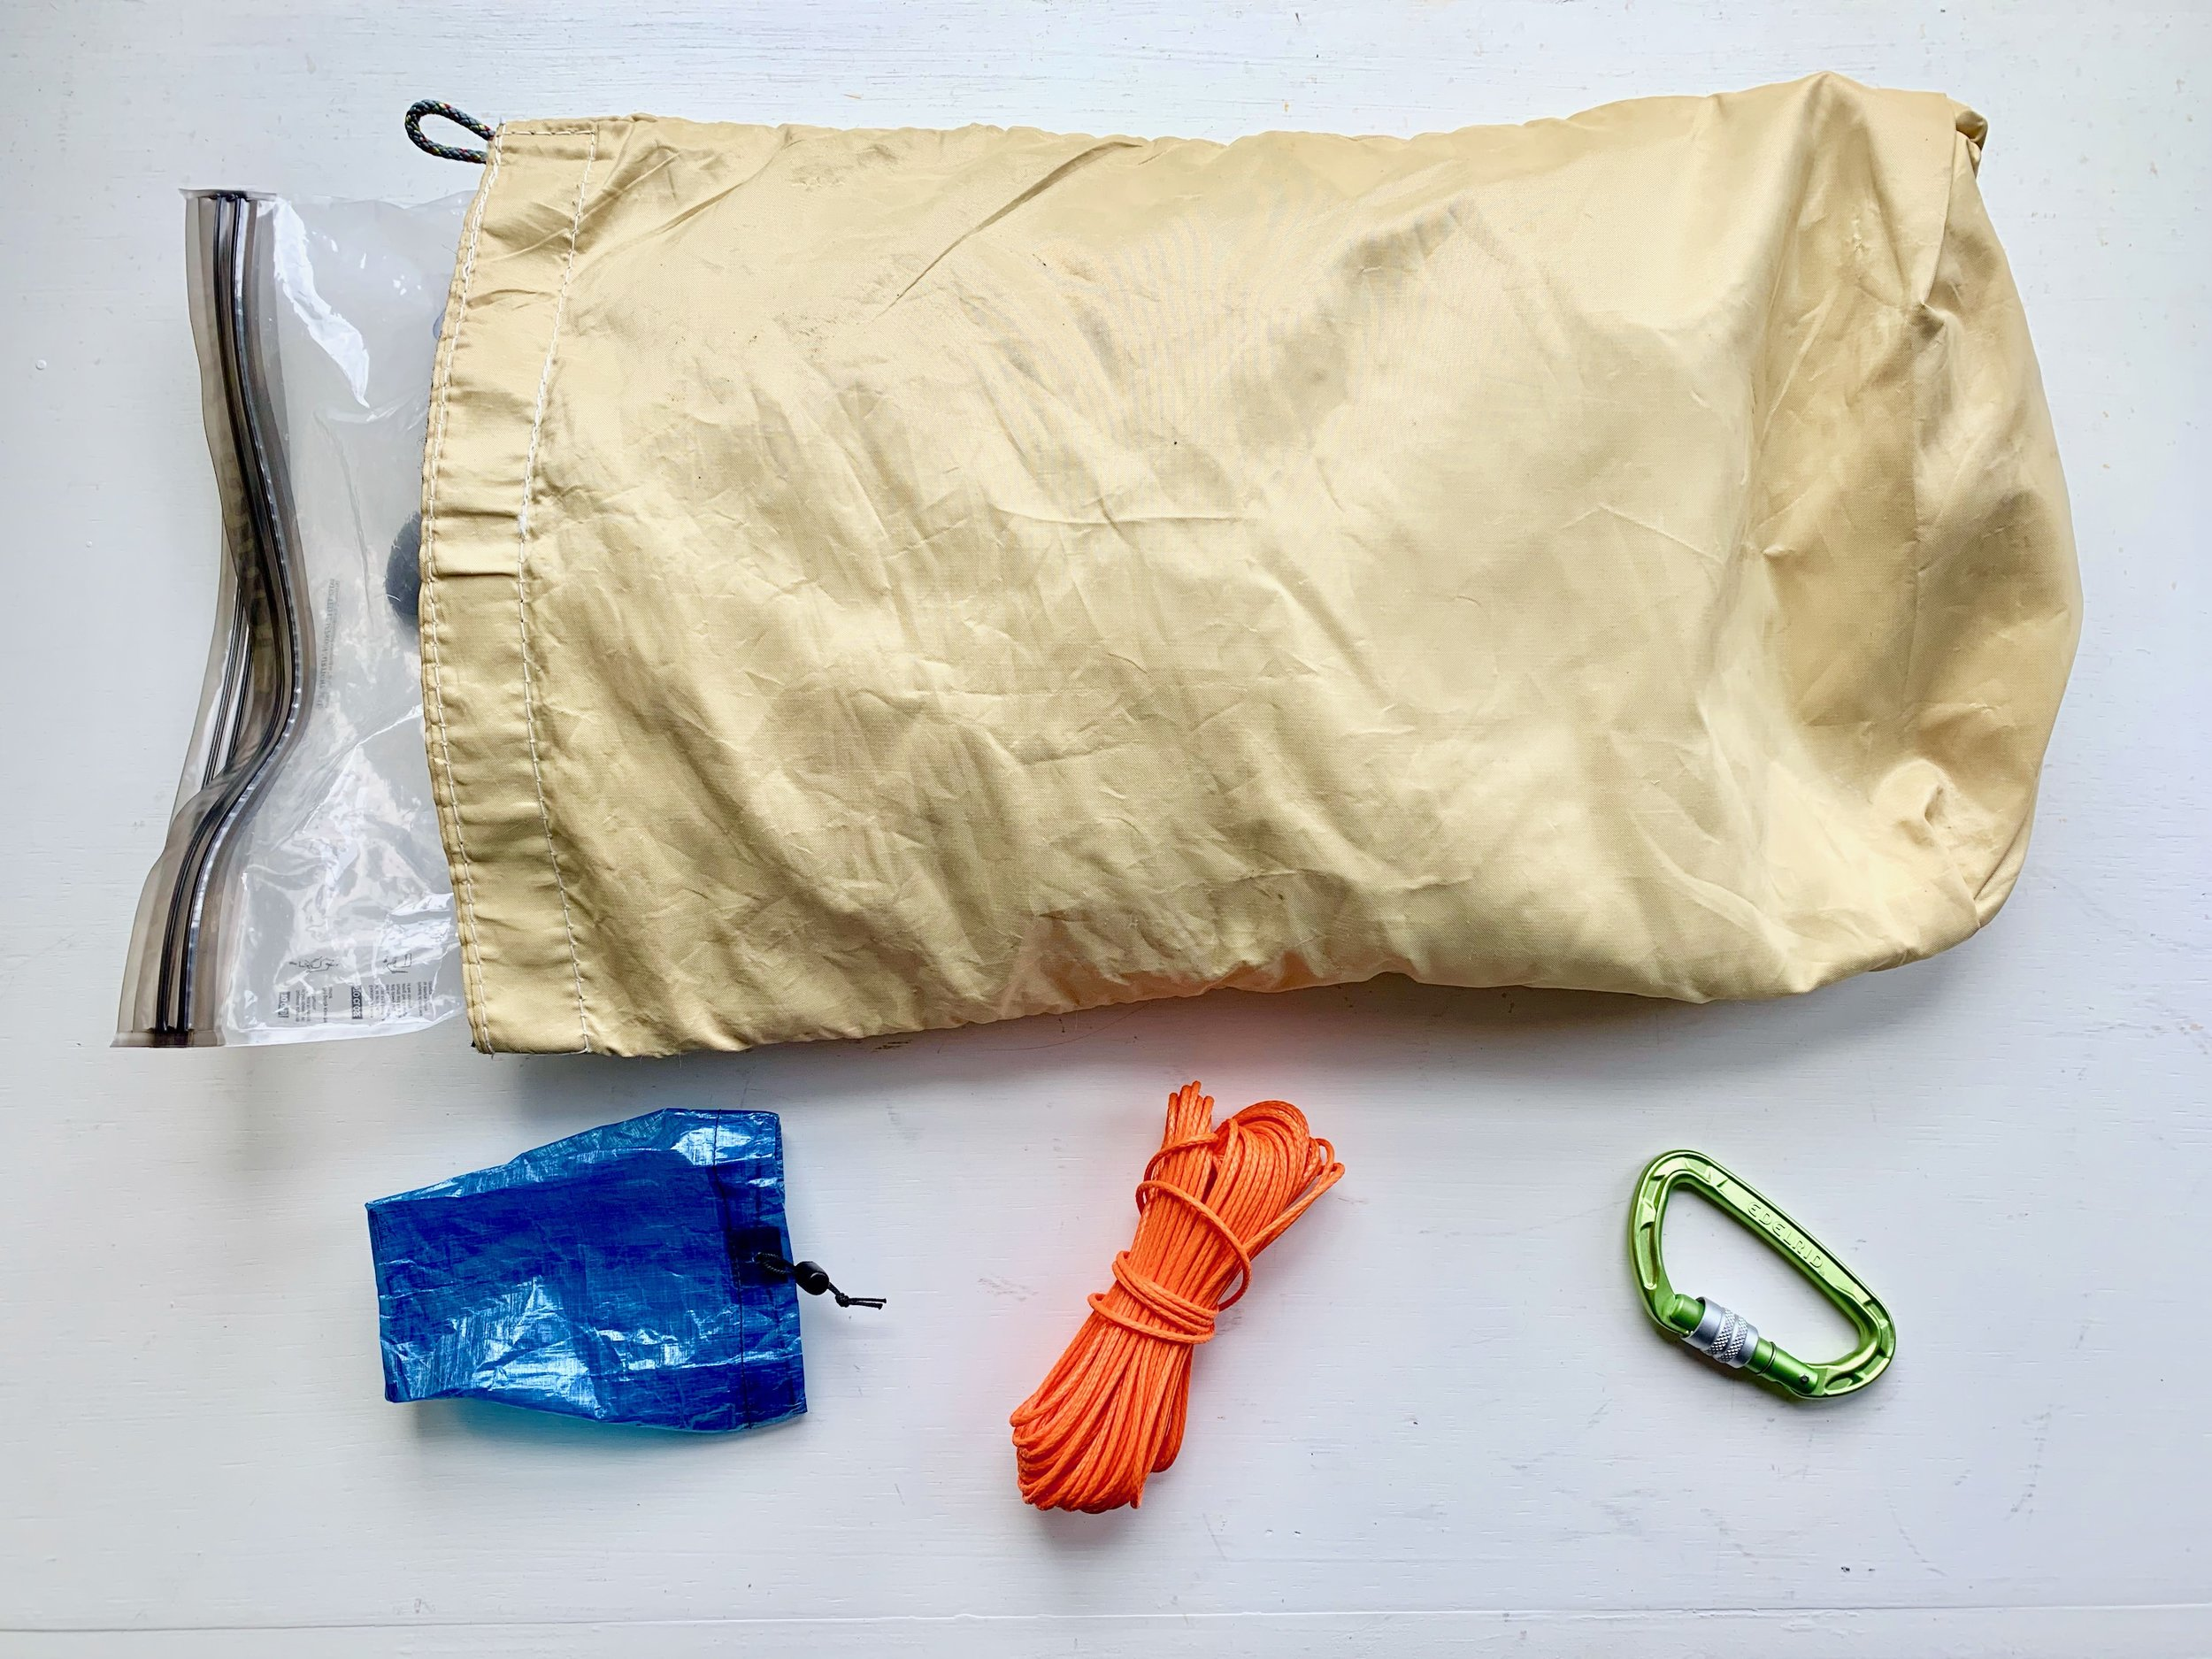 Protecting food without a canister:  Hang it in a tree. Odor-proof Opsak stuffed into a rodent-chew-proof Ursack Minor. Small rock sack, slick cord, and carabiner for hanging.